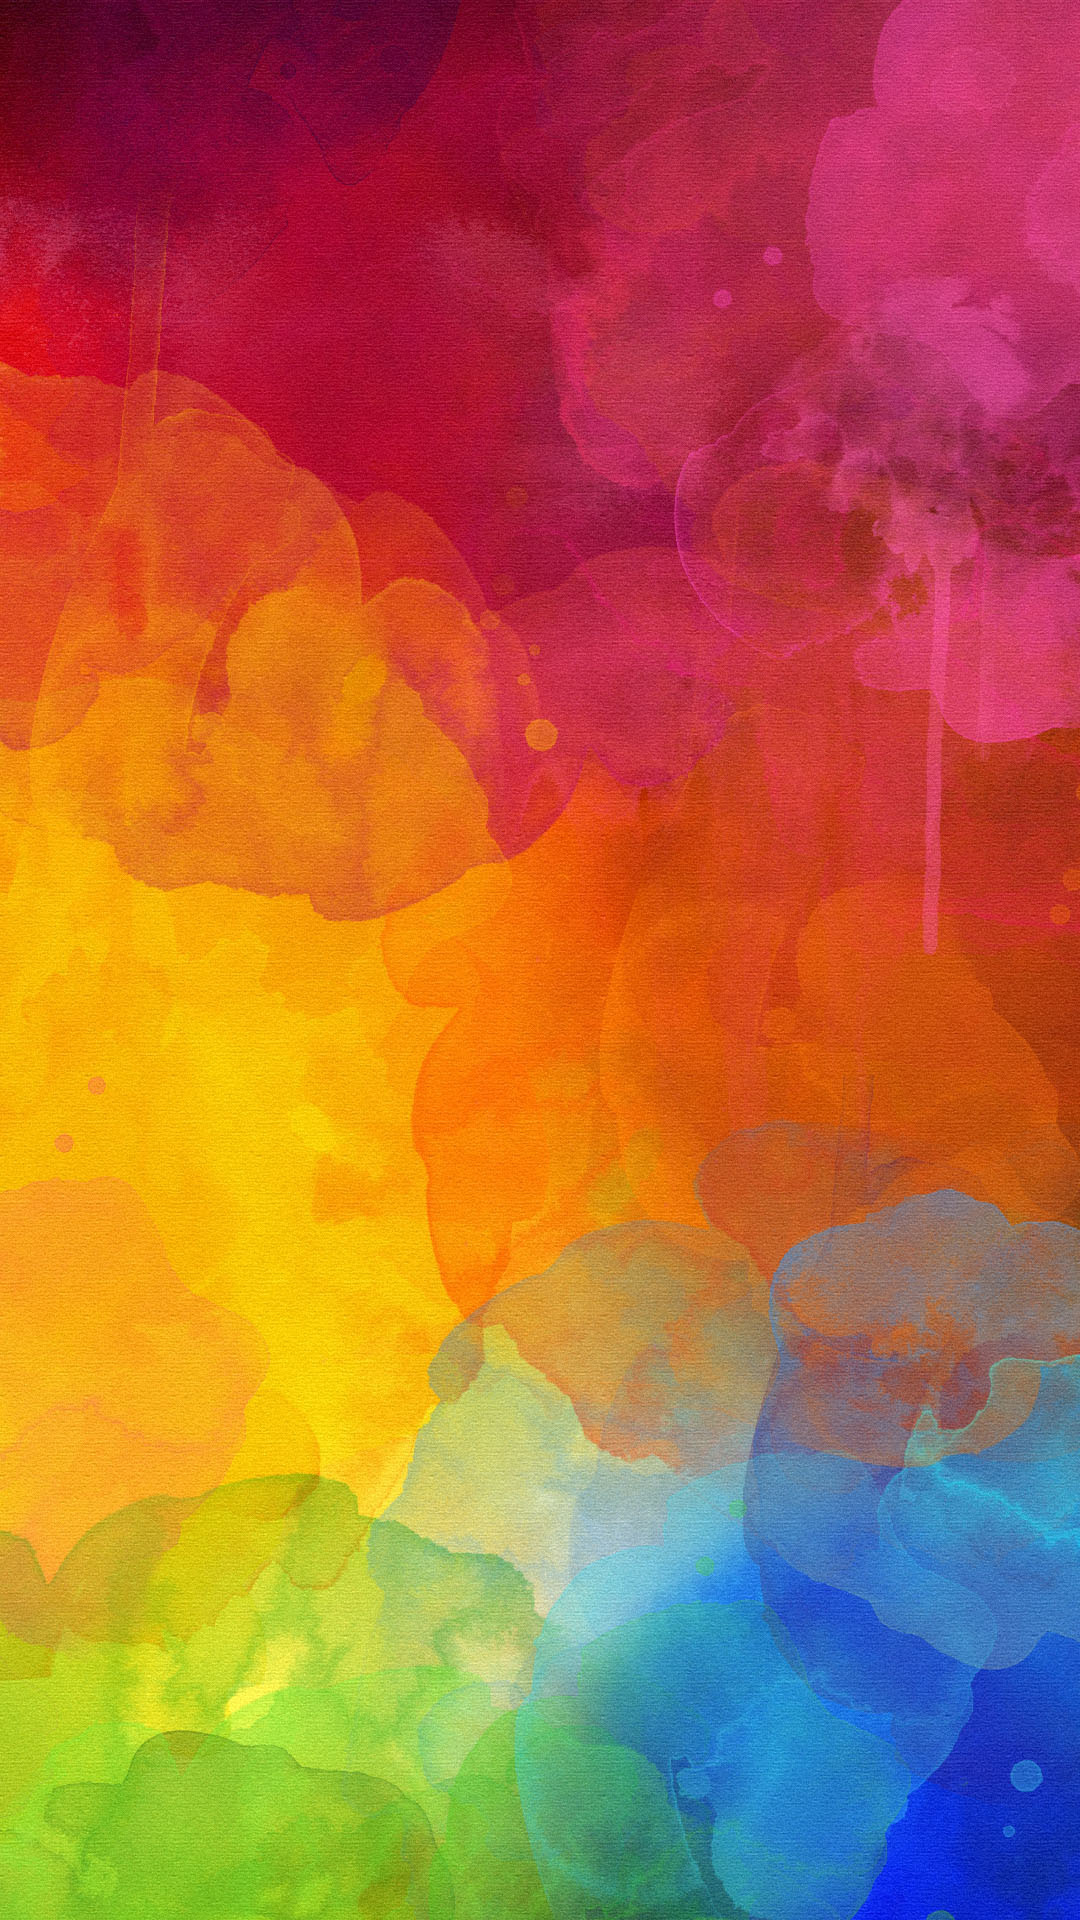 Colourful-Watercolour-Mark-Color-of-rainbow-in-abstract-Tap-to-see-more-iPhone-Android-wallpapers-wallpaper-wp4805454